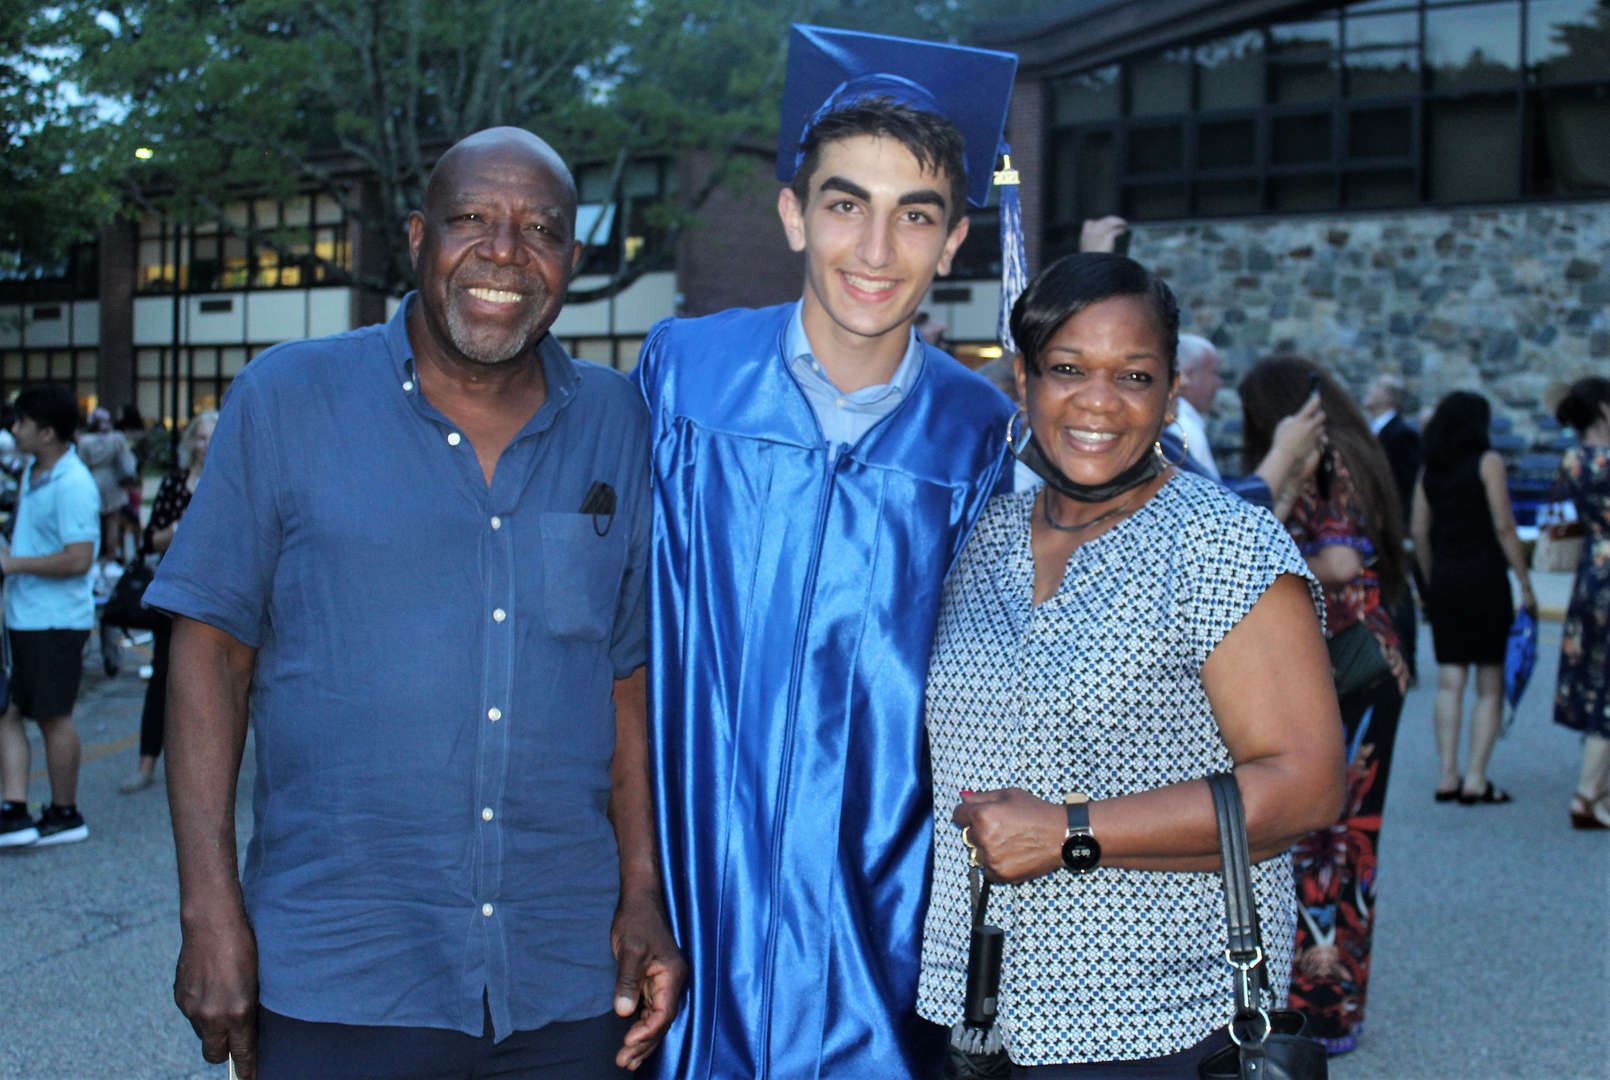 Graduate Zachary M. poses with school bus drivers.